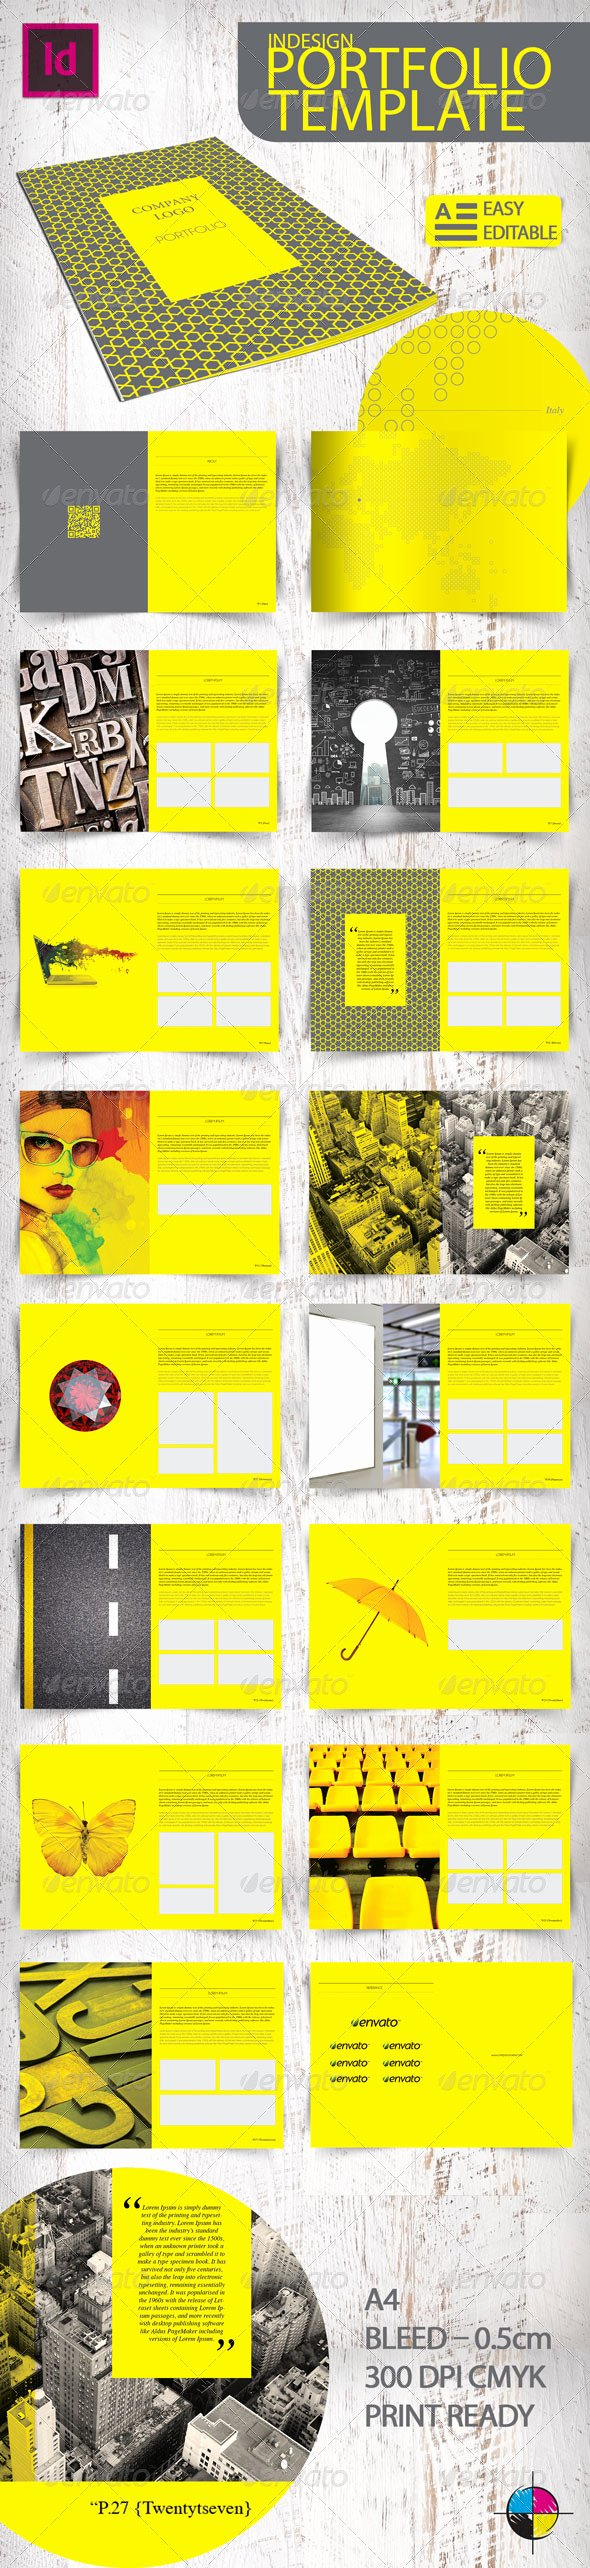 Indesign Portfolio Template Free Unique Indesign Portfolio Template by Erdem Ozkan